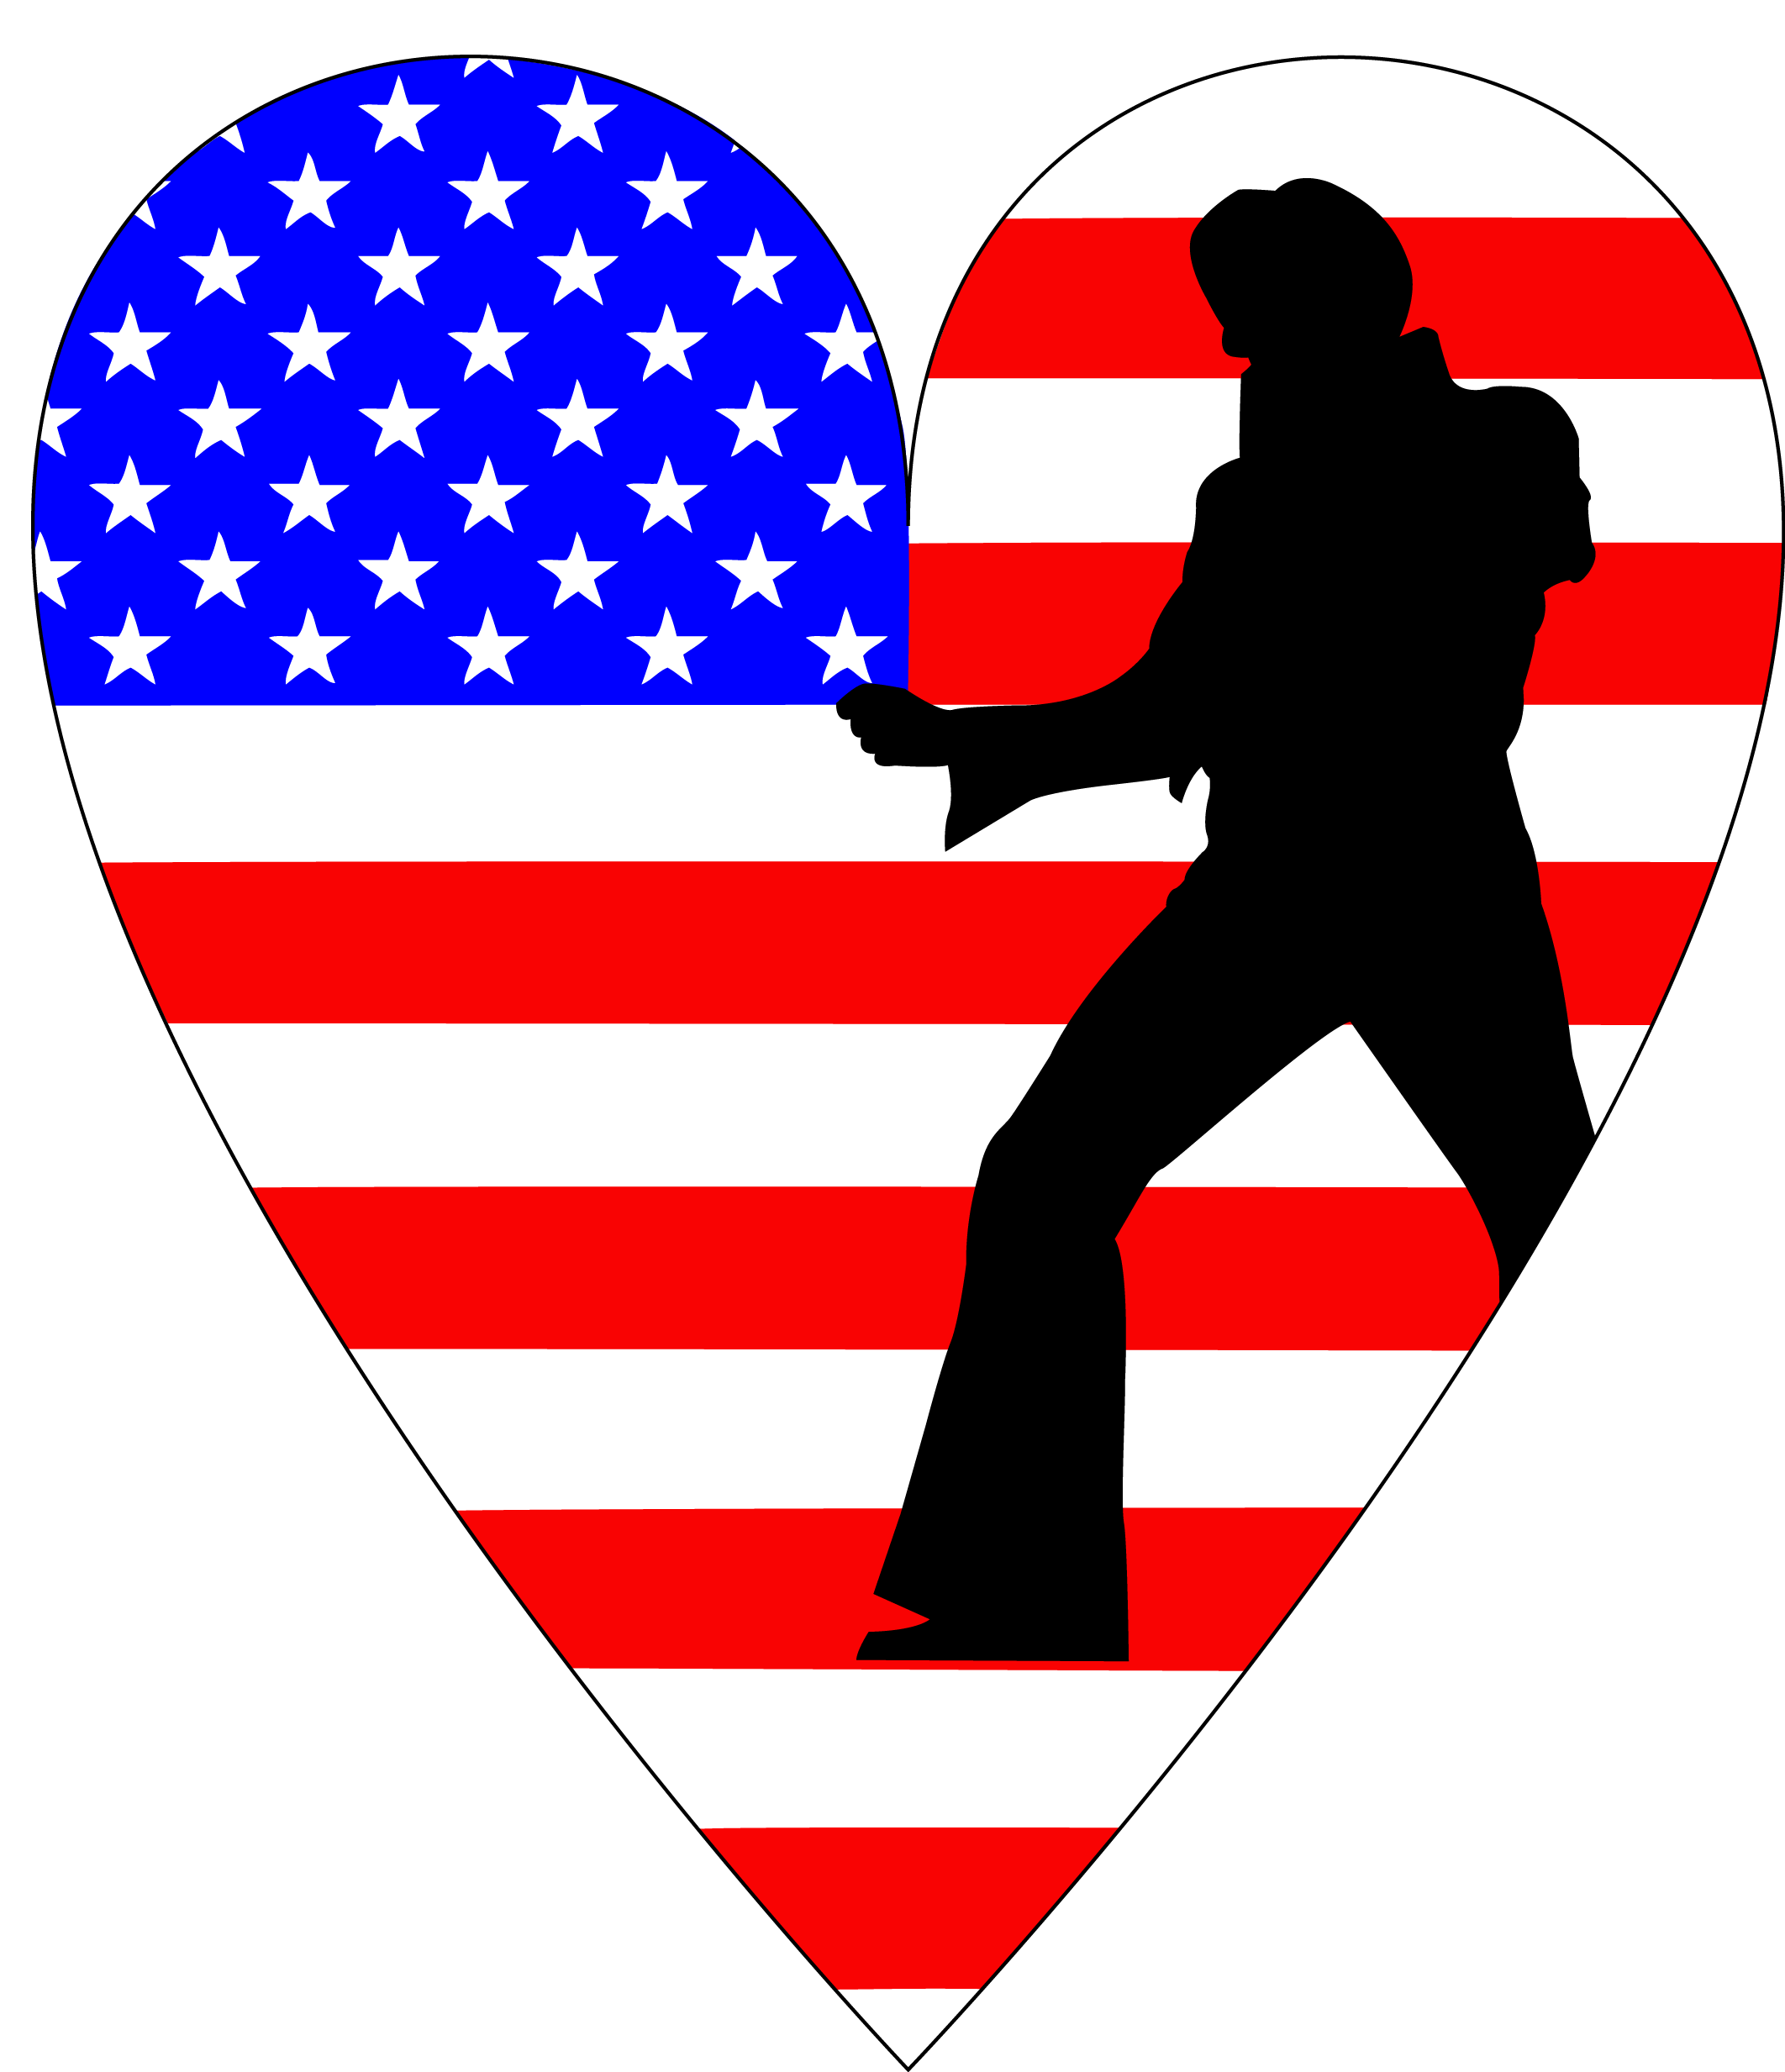 Elvis silhouette on American flag